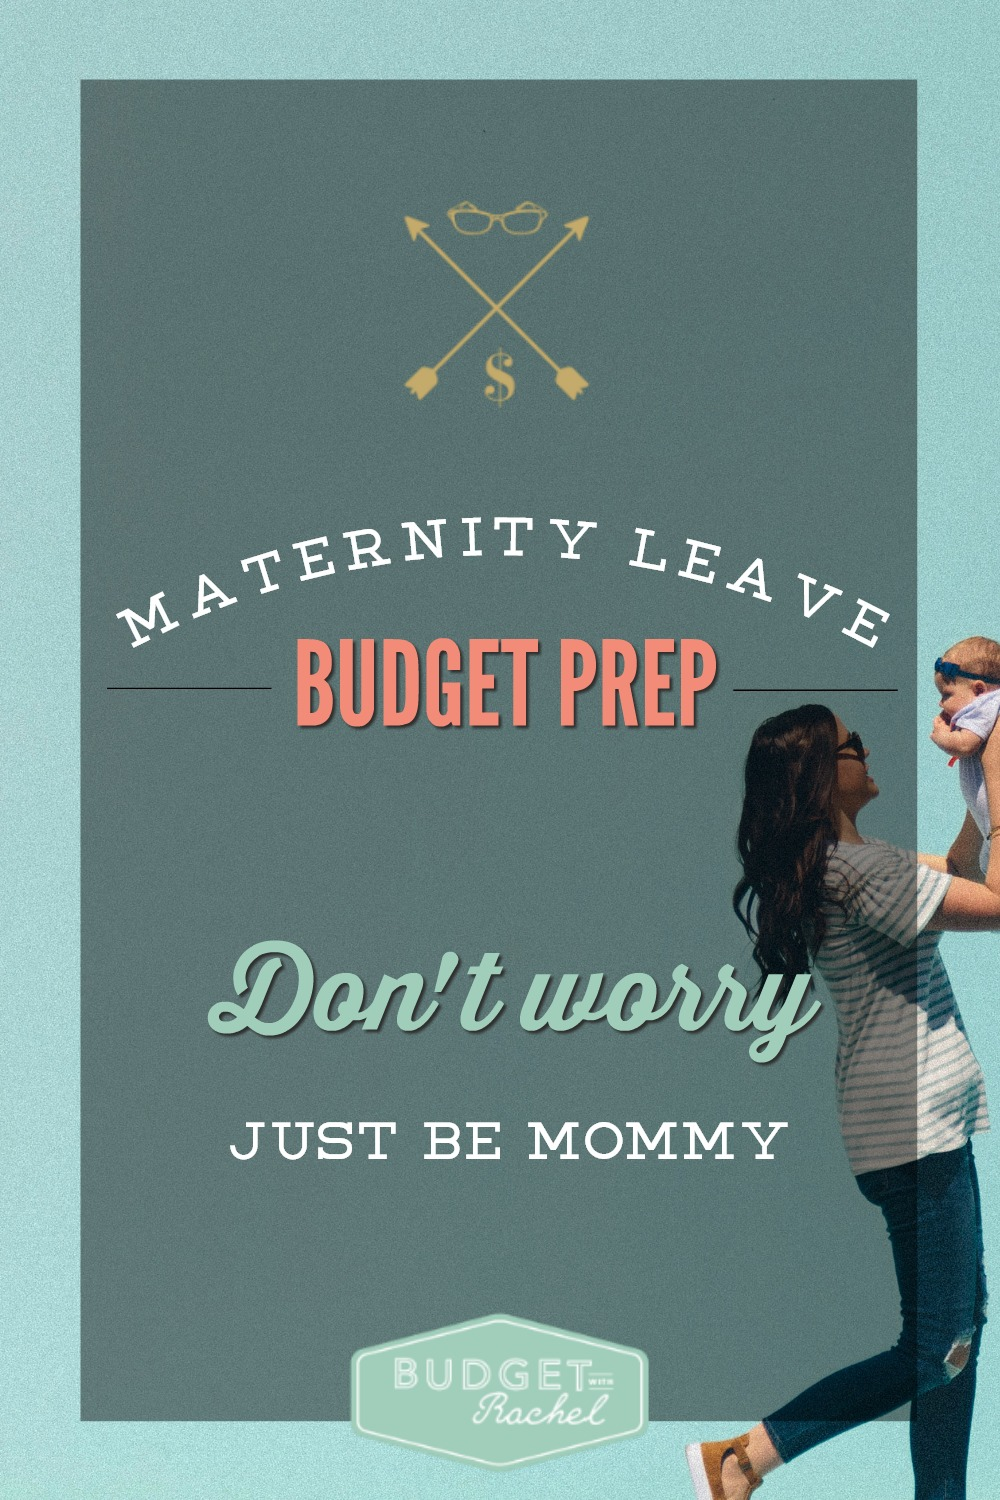 Step-By-Step How to Prepare Your Budget for Maternity Leave. I was so worried about how we were going to live while I was on maternity leave. This step-by-step approach helped me organize my finances and figure out what I had to do to have a stress-free maternity leave. This is amazing! Now I am not worried at all about money for maternity leave and I can just enjoy my new baby!